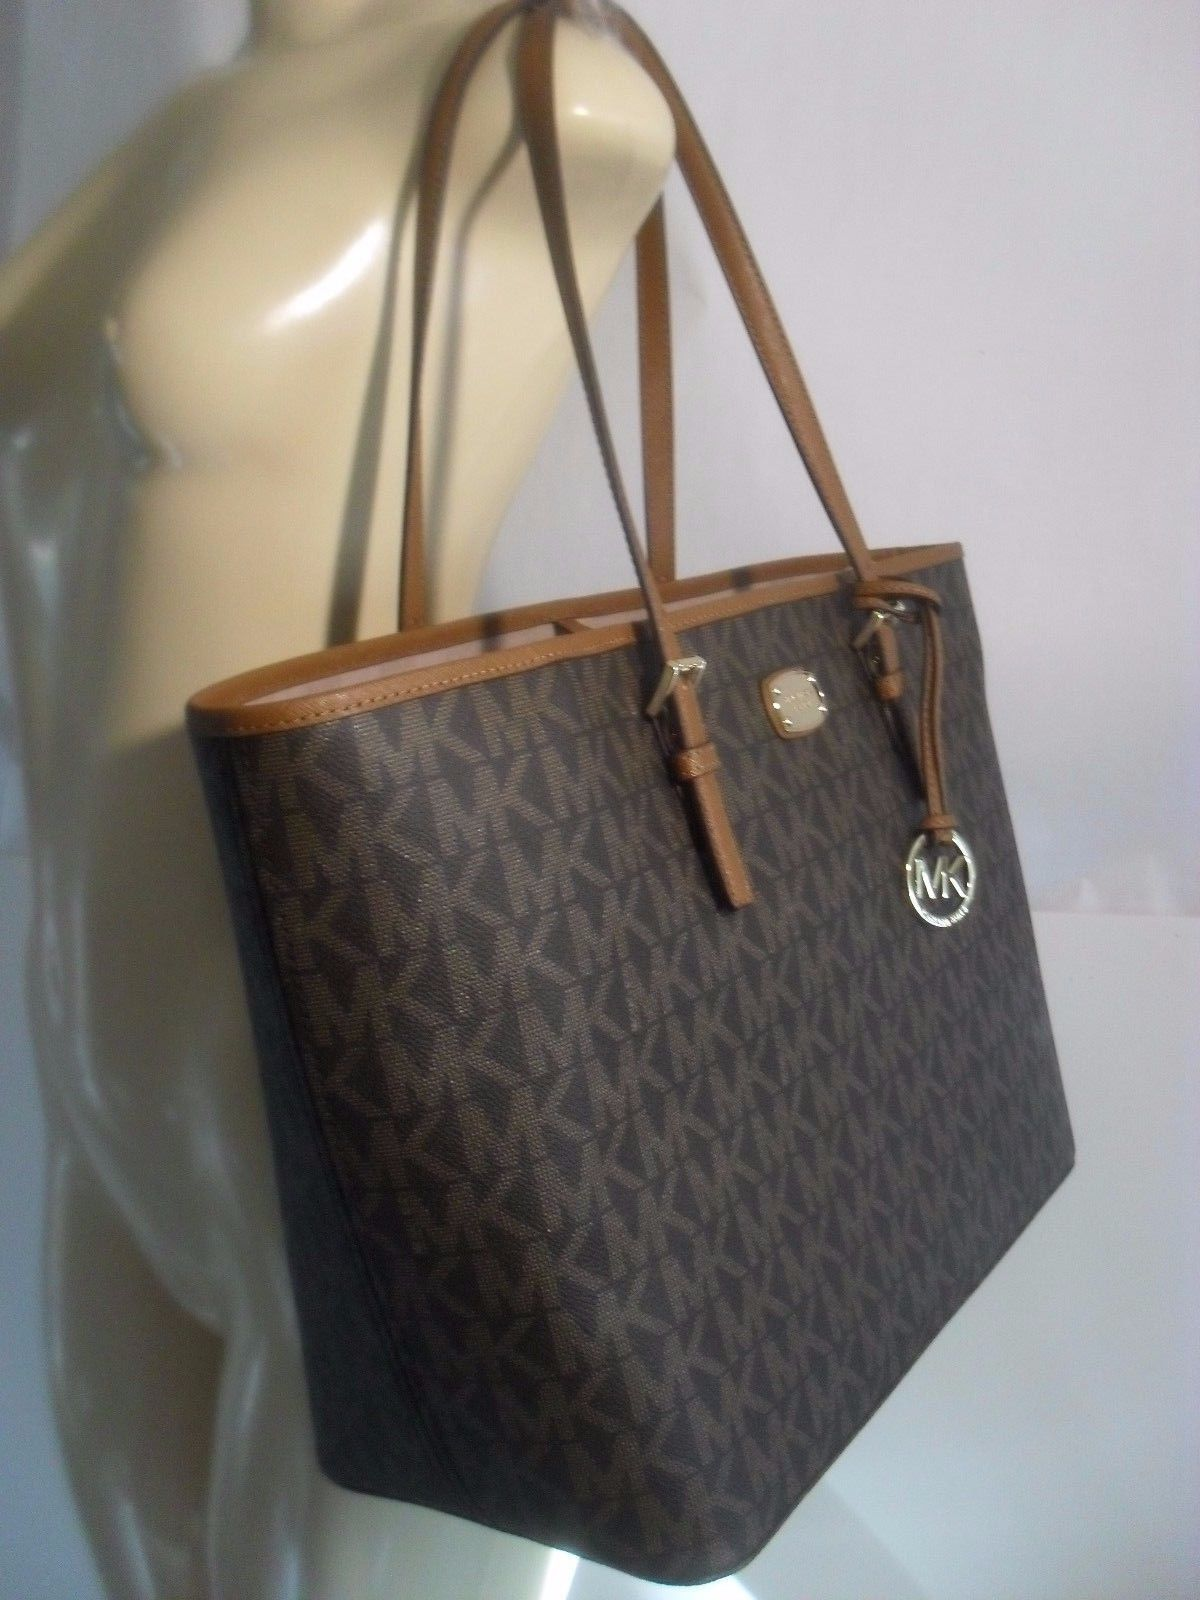 3ac4625a1299 NWT Michael Kors Jet Set Brown MK Signature Carryall PVC Large Tote Shopper  Bag $129.95 https